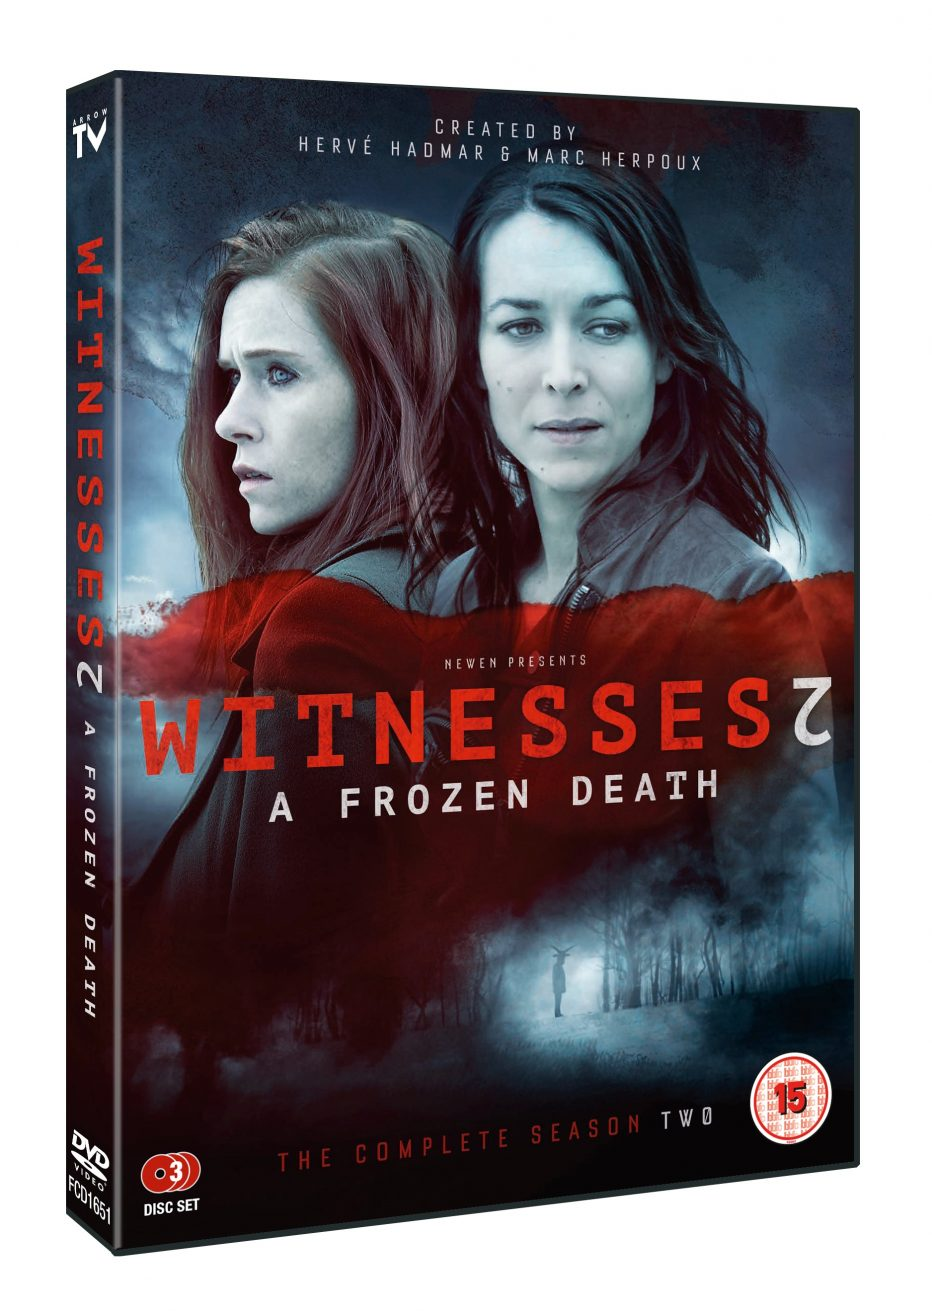 Witnesses – A Frozen Death (2017) Review